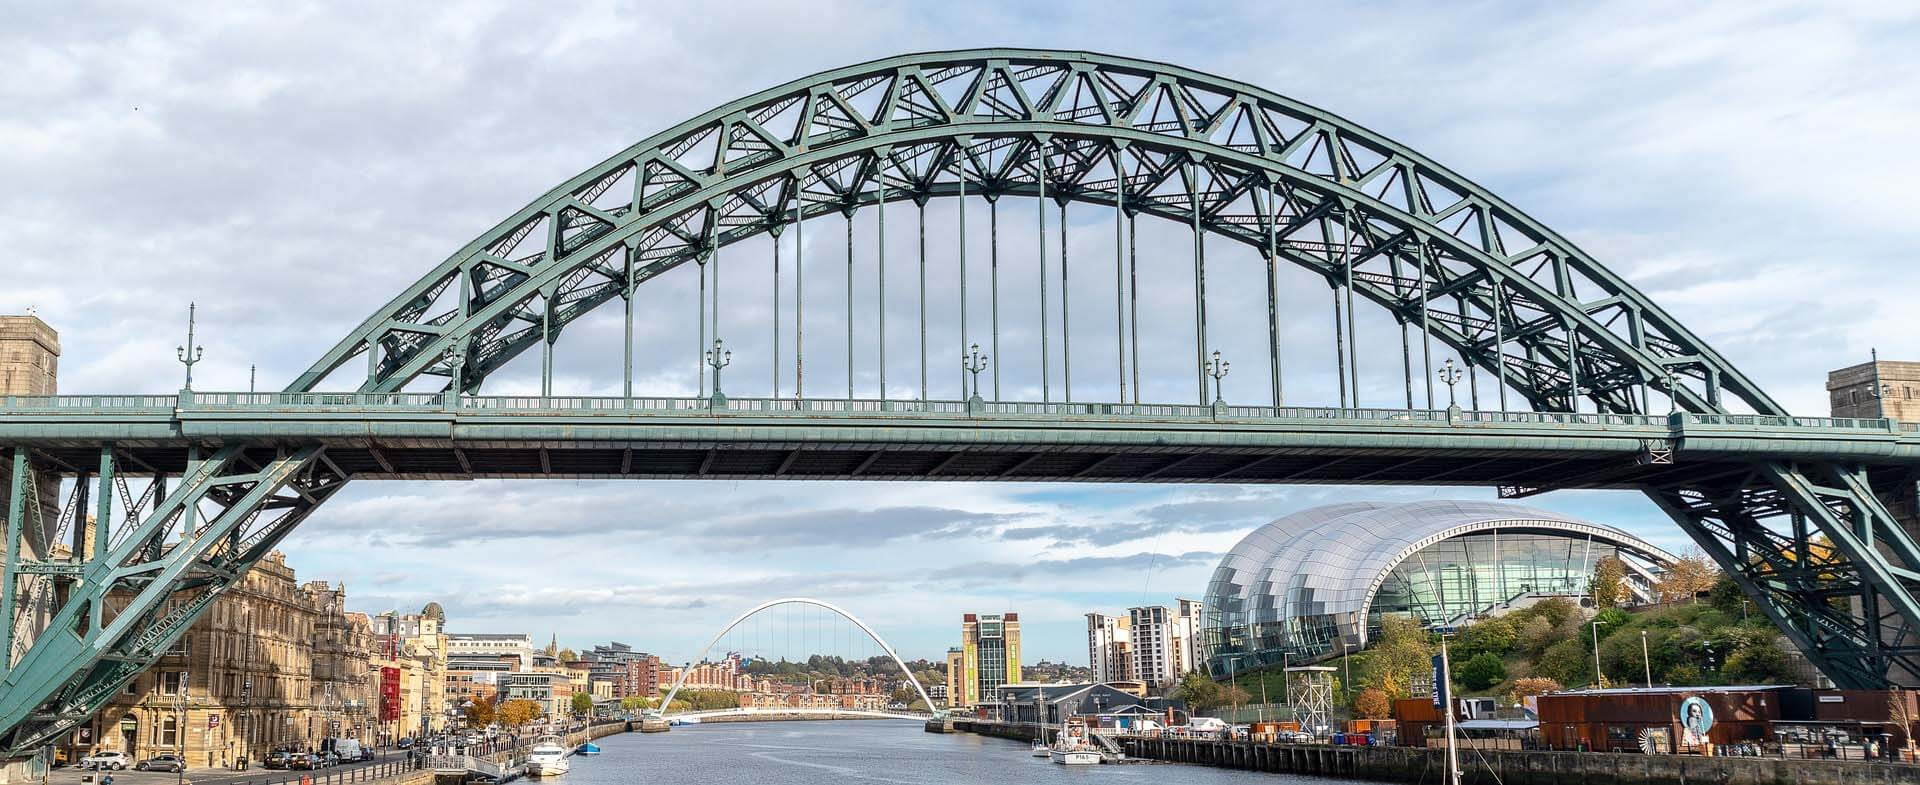 Tyne-Bridge-Newcastle-Engeland